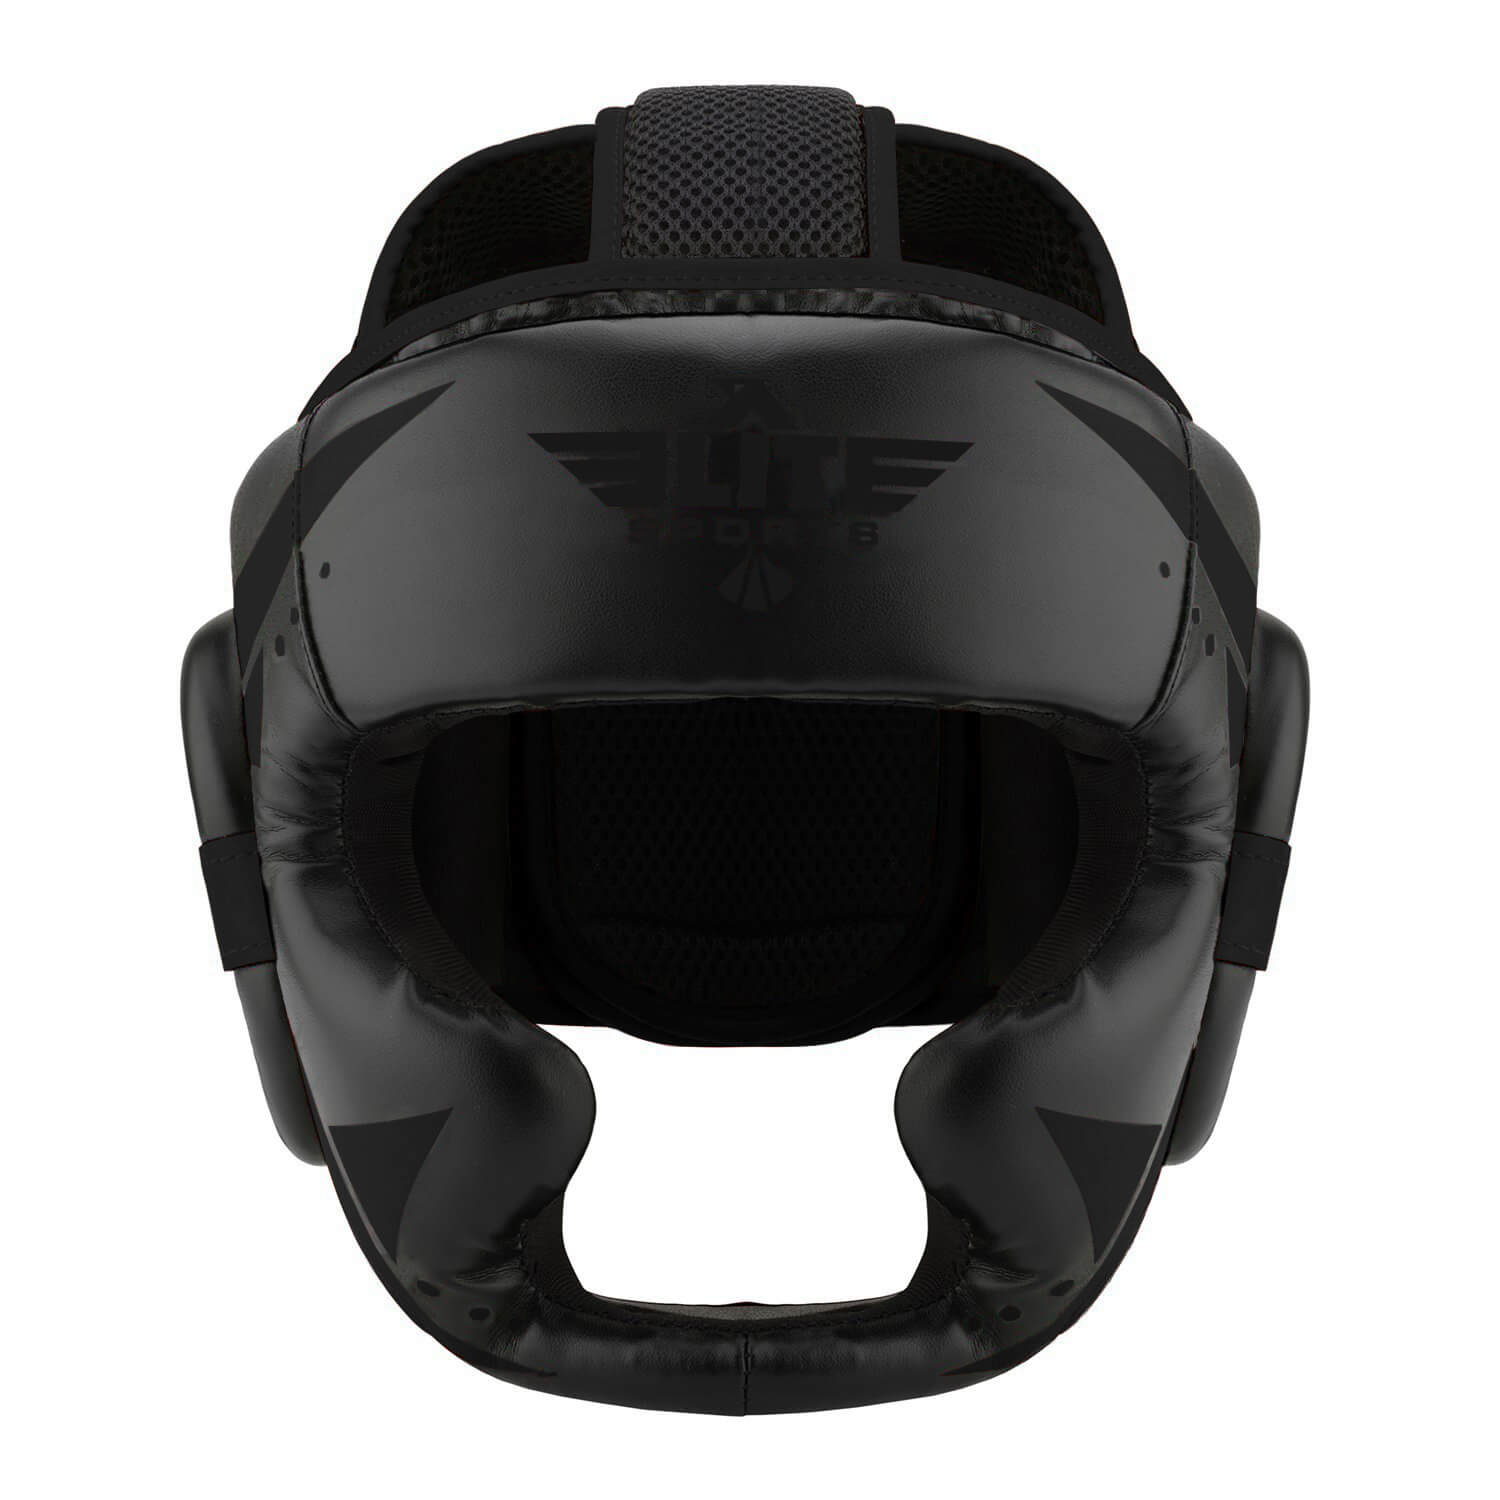 Load image into Gallery viewer, Elite Sports Star Series Sparring Black/Black Boxing Headgear